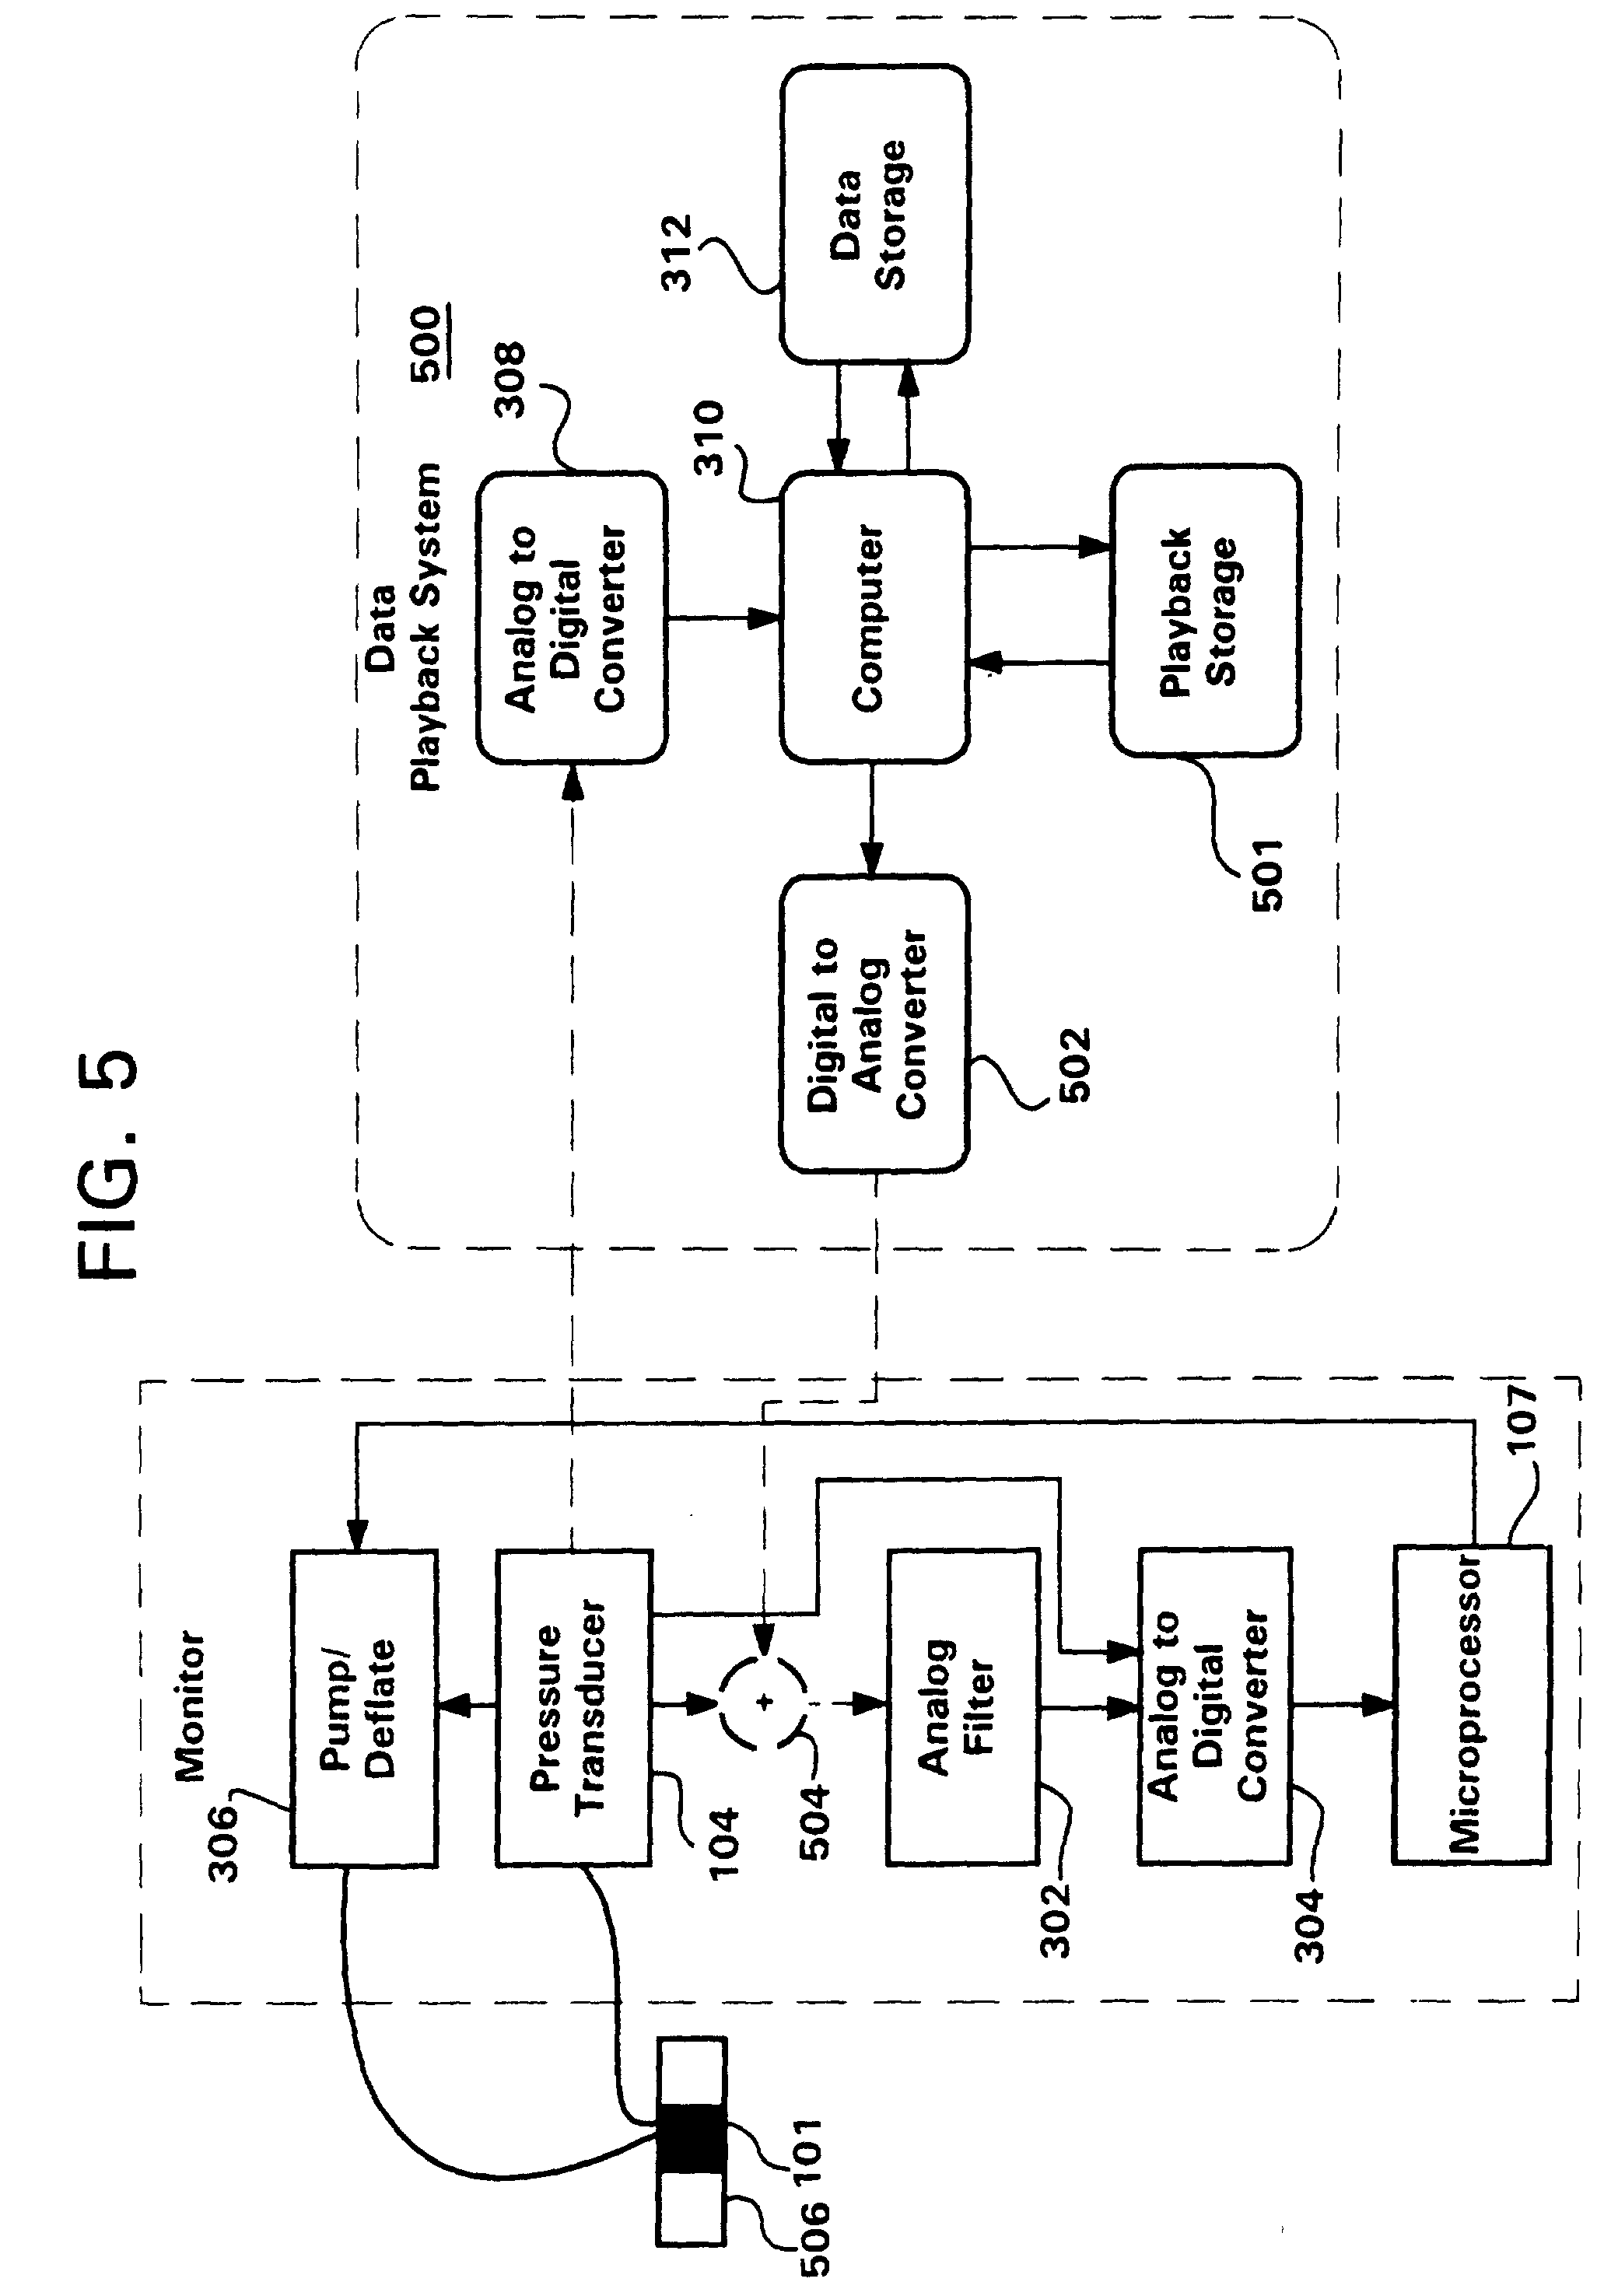 patent ep0748610b1 - nibp playback system